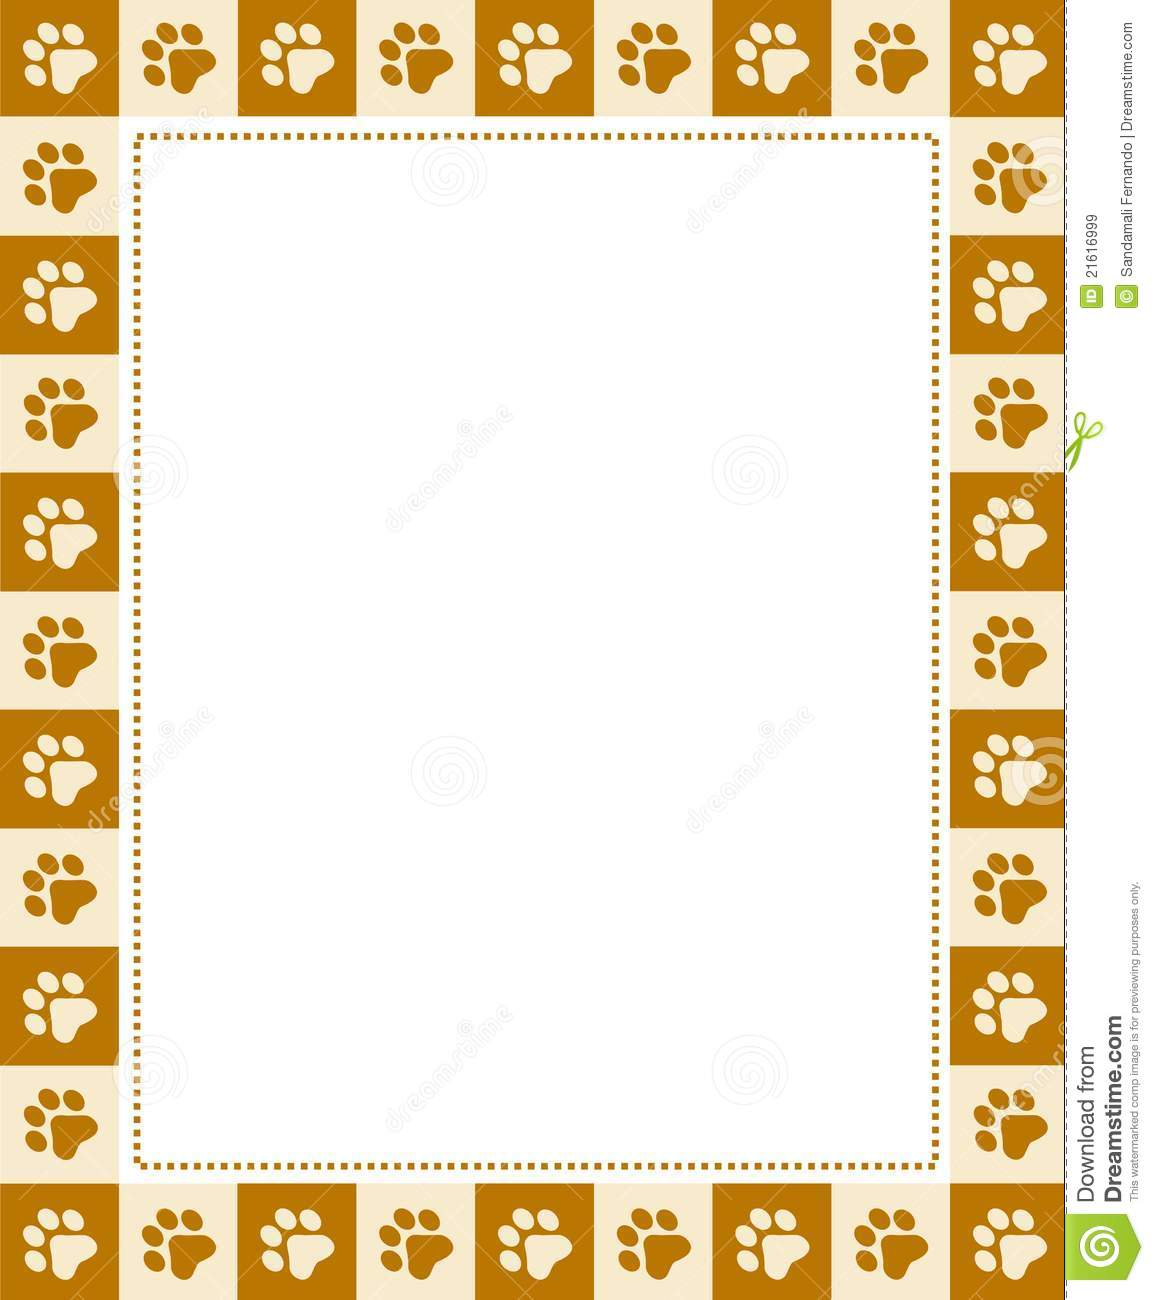 Cute pets [dogs and cats] paw prints border / frame.